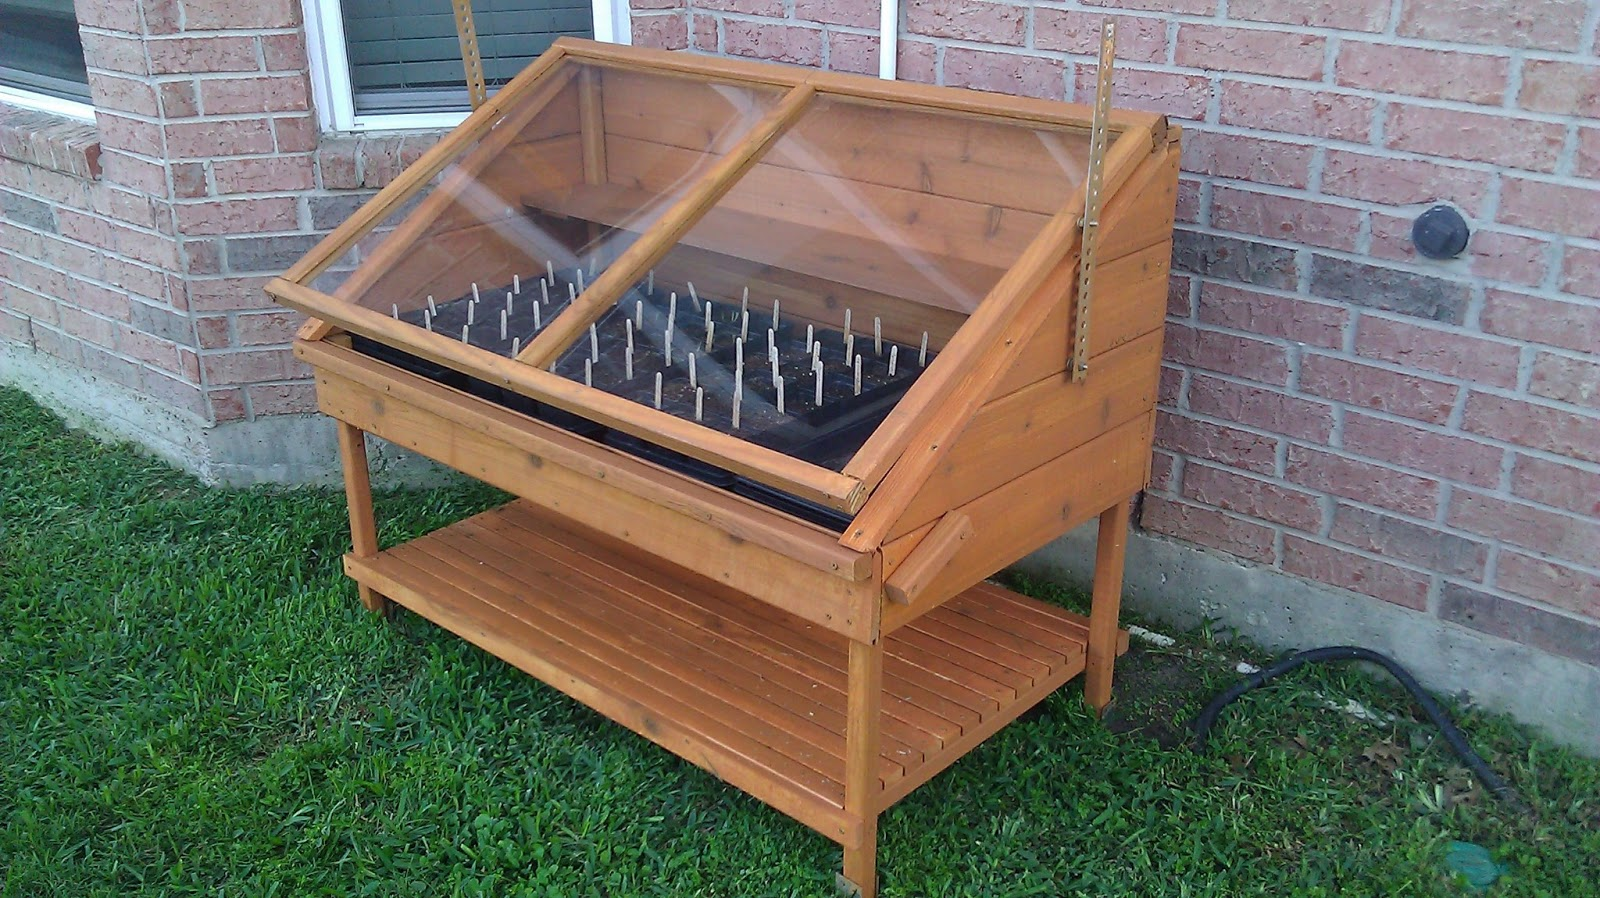 cold frame plans  The SelfSufficient Living